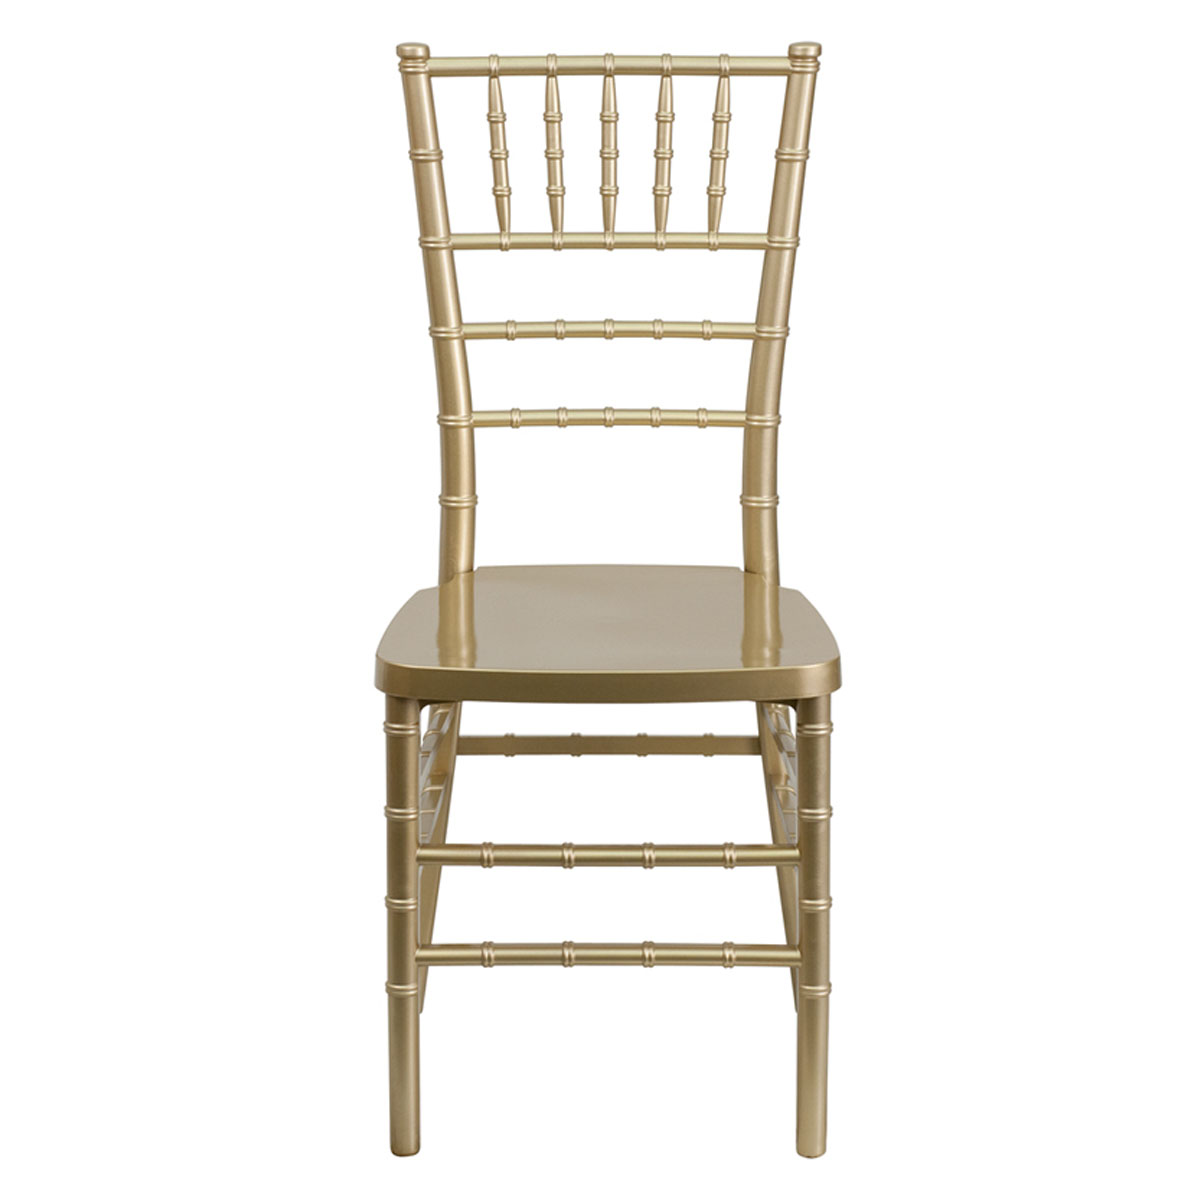 Location Chaises Reception Chaise Chiavari Monobloc Vente Location De Mobilier De